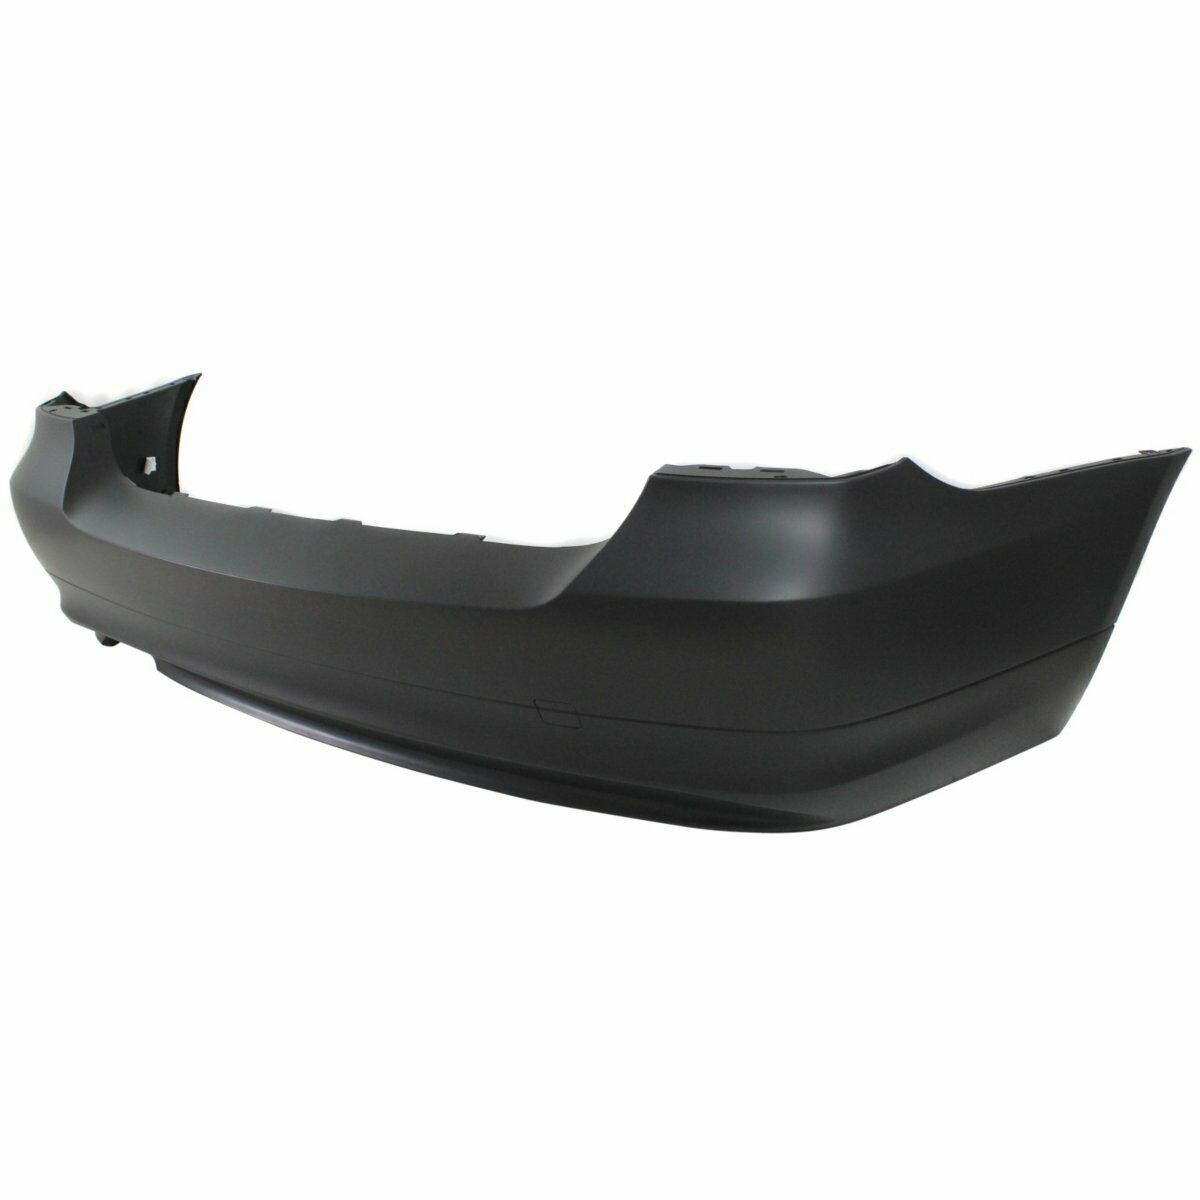 2009-2011 BMW 3 series Sedan 3.0L Rear Bumper Painted to Match